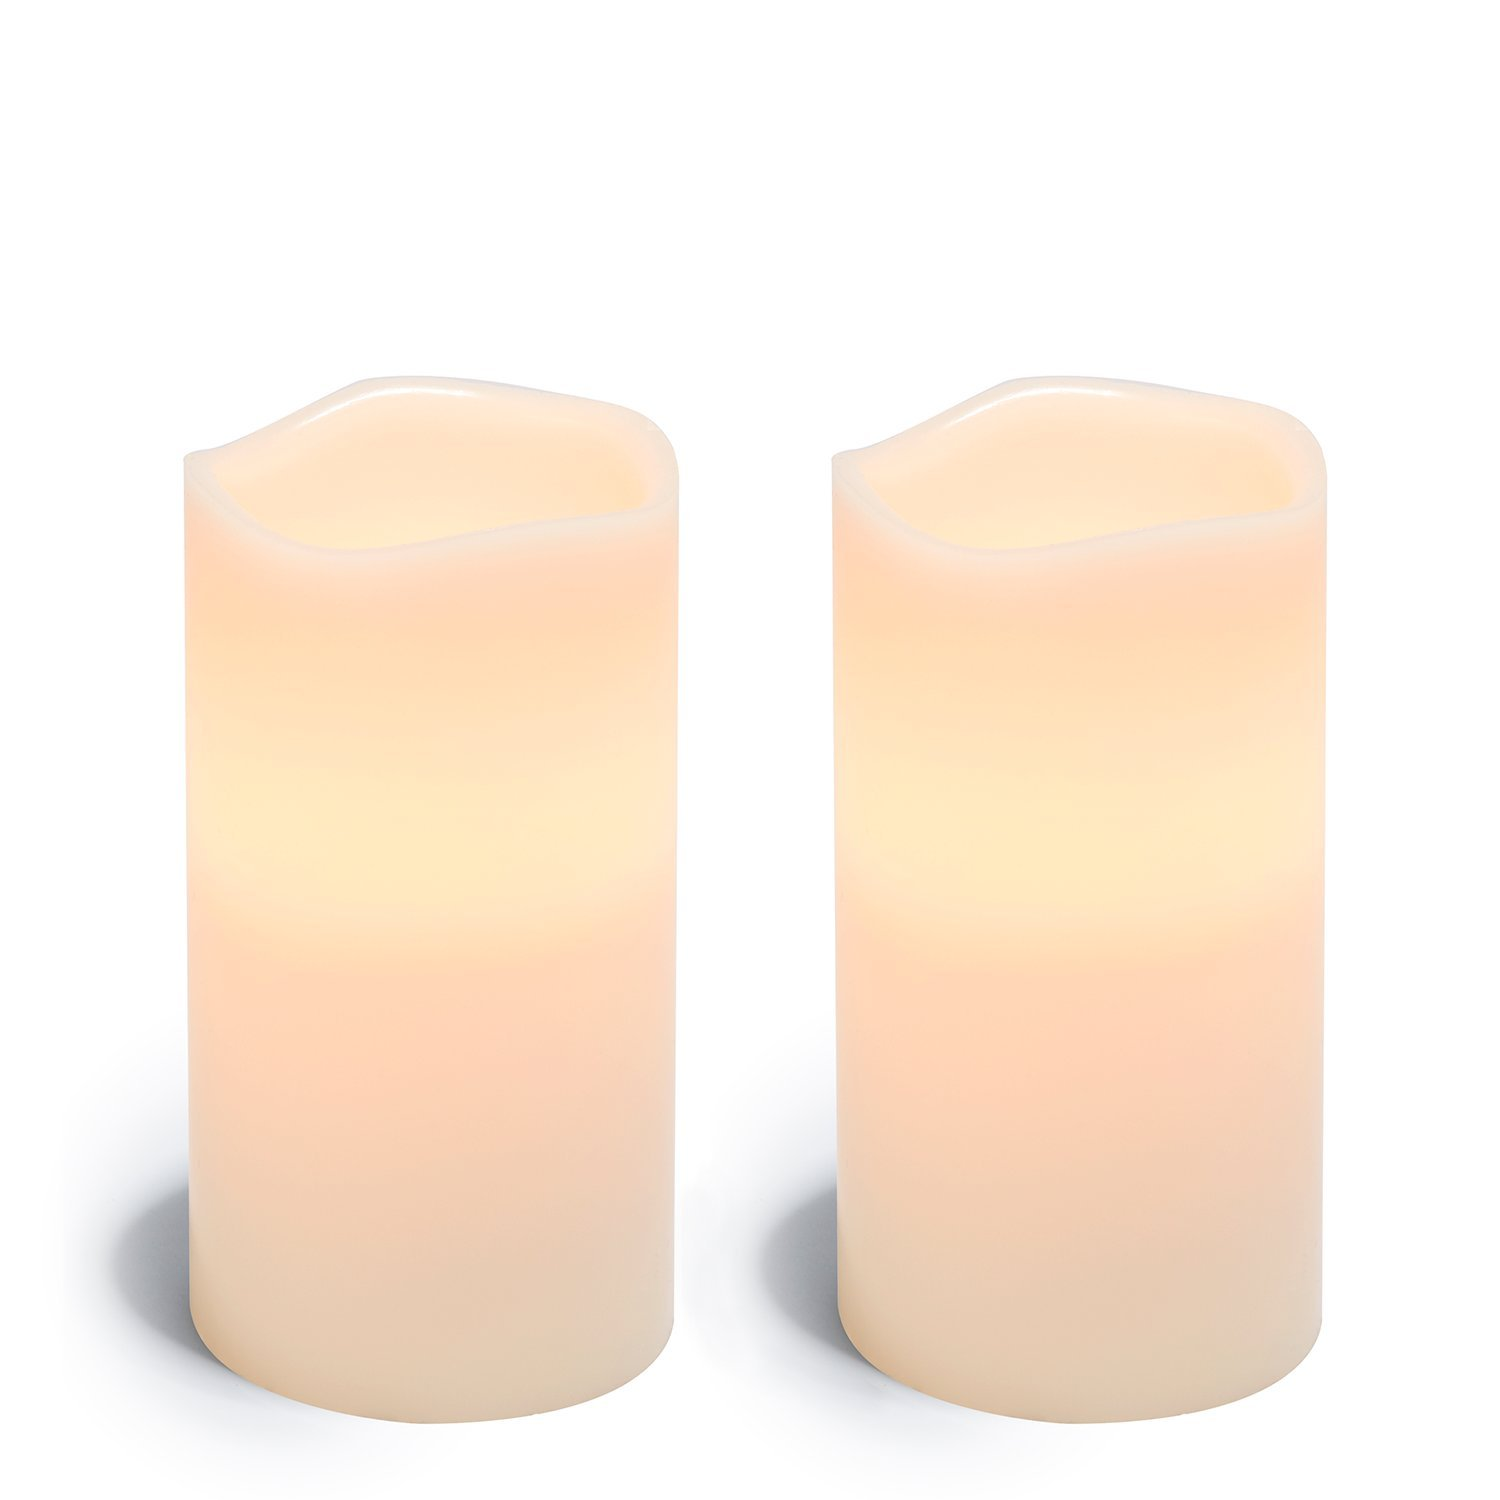 Large Flameless Pillar Candles, Set of 2, White Wax Candle with Melted Edge, 4 x 8 Inches, Warm White LED - Batteries Included by LampLust